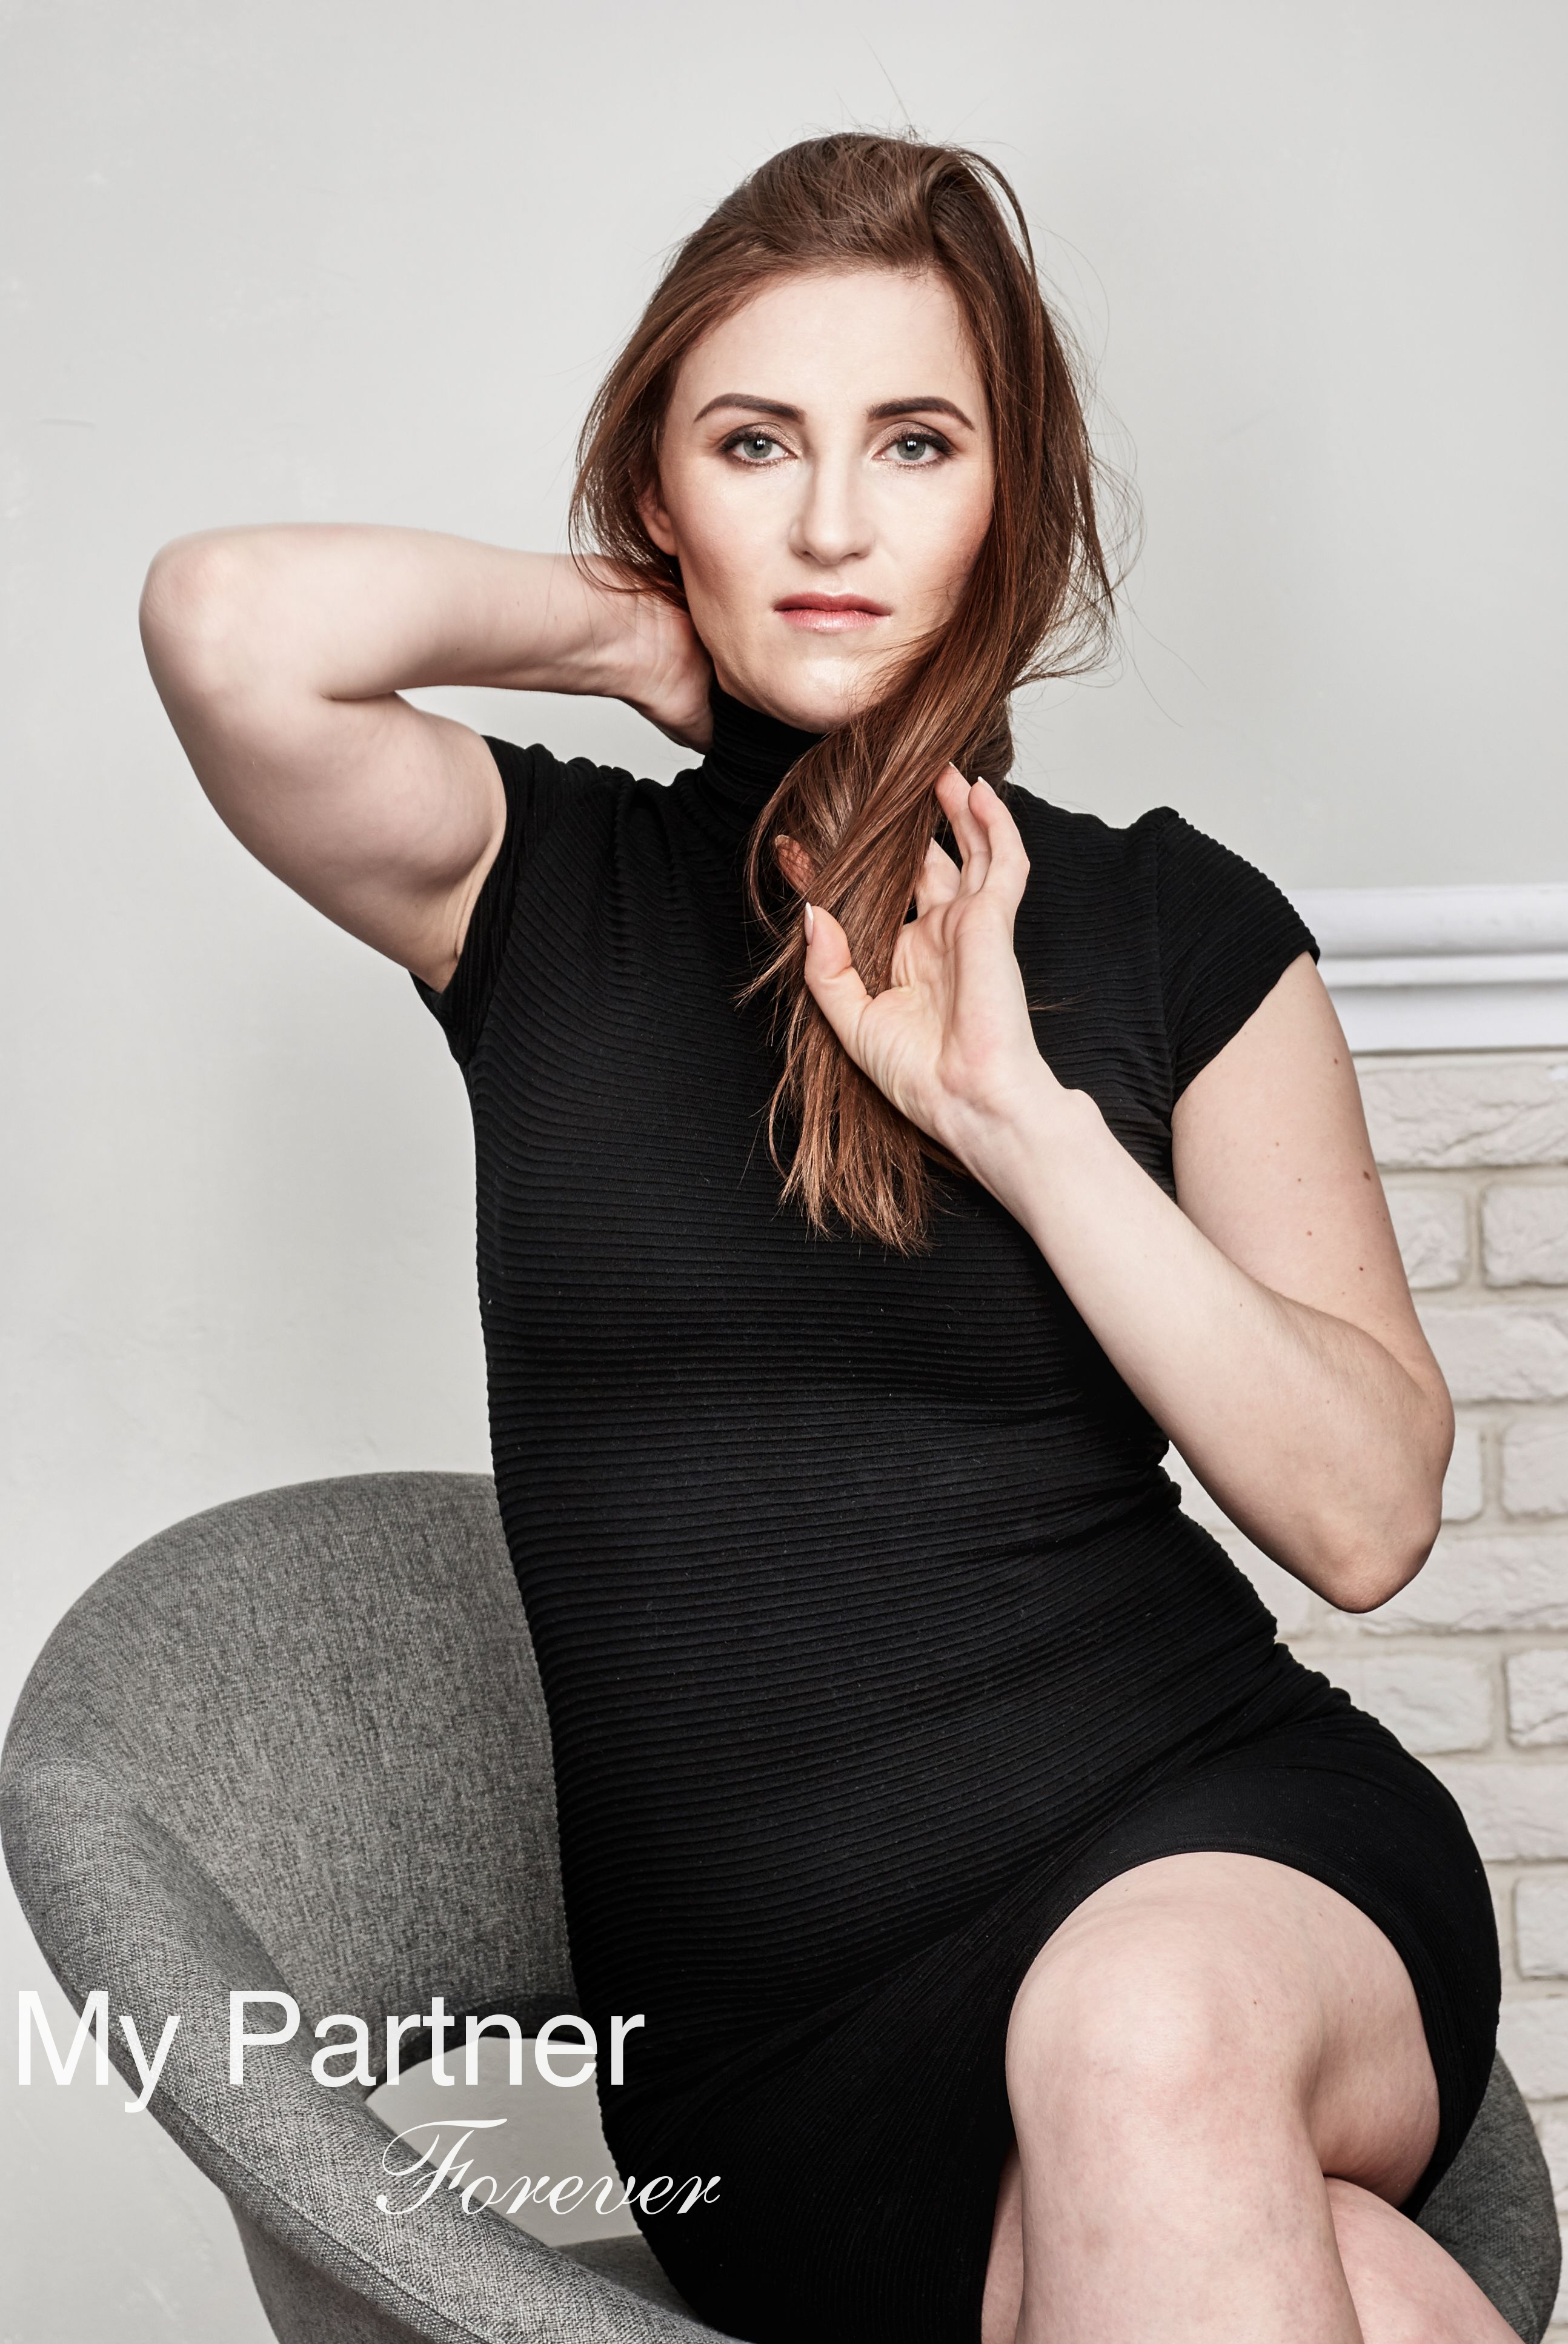 kiev single mature ladies It`s difficult to describe myself i guess the best way for you to know me is to meet but we may start from the communication here what do you think well, let me tell you.